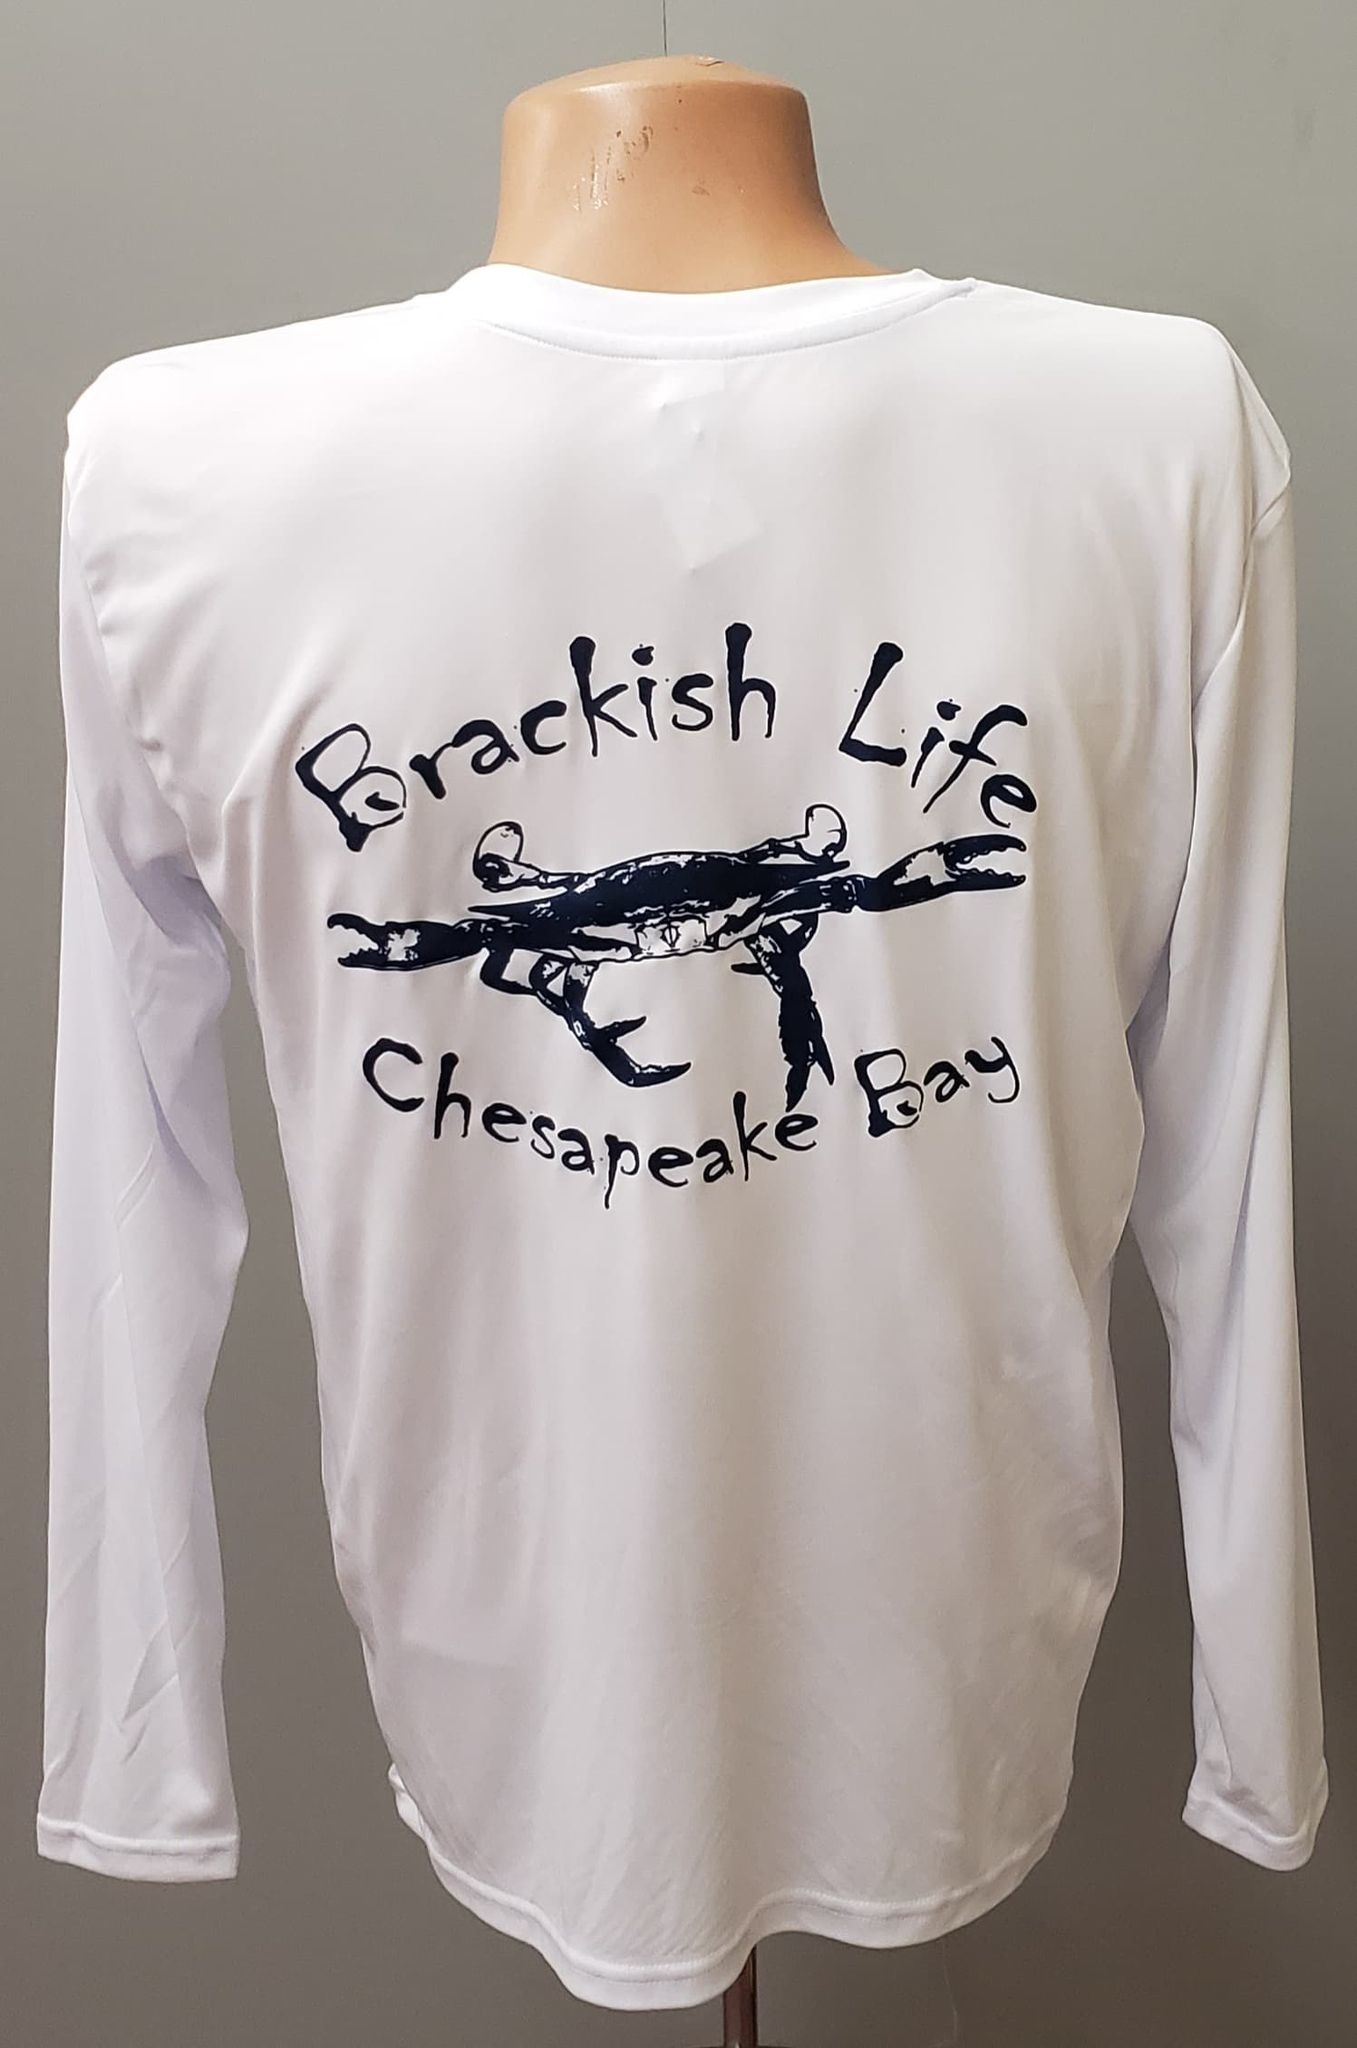 Brackish Life Performance UV L/S, White/USA Definition, Crab